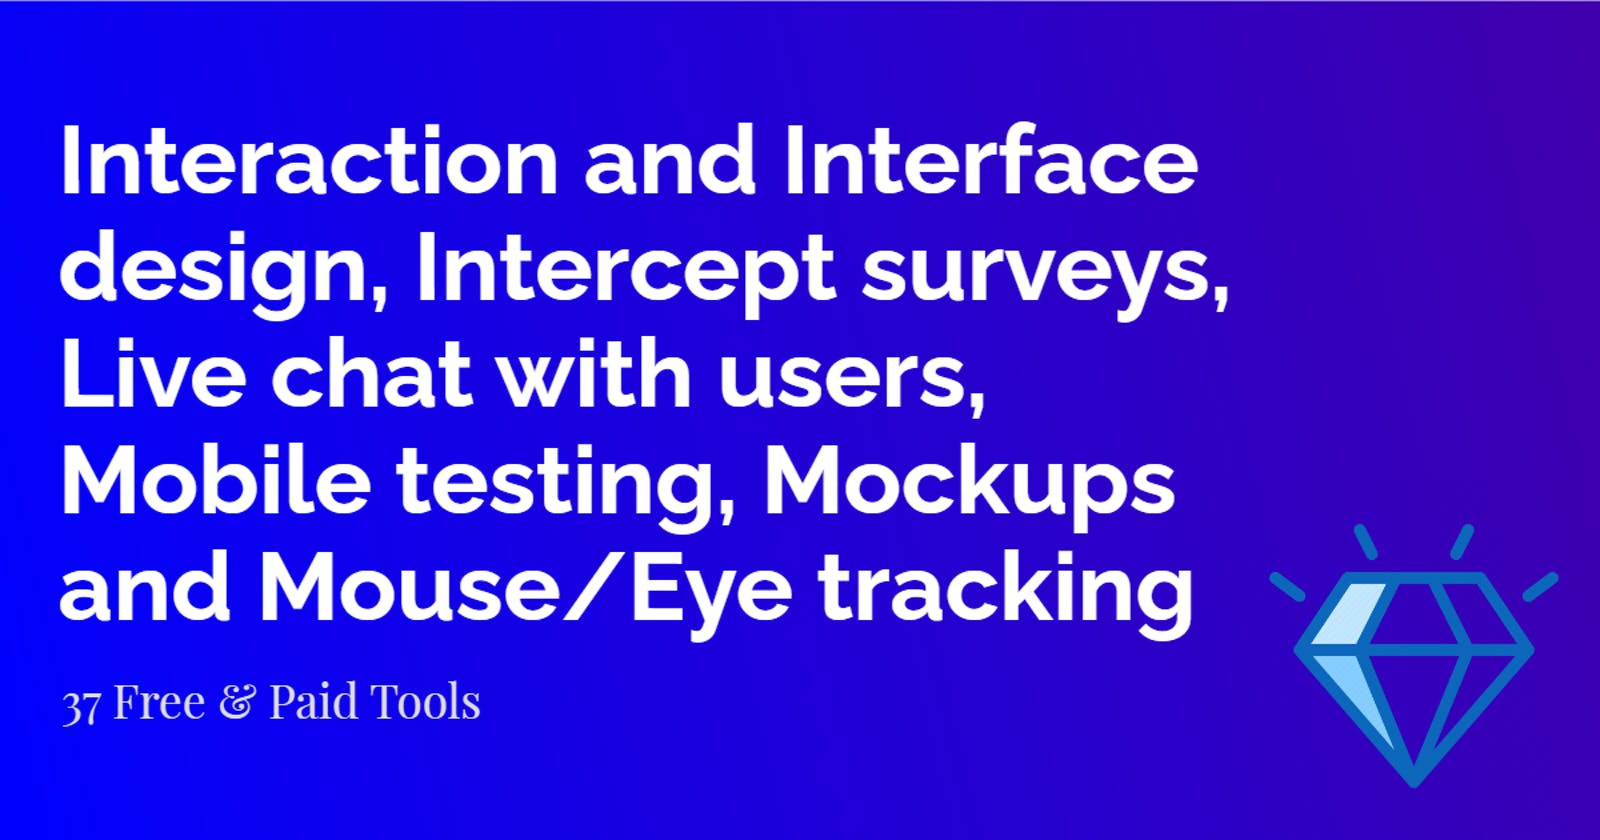 Interaction and Interface design, Intercept surveys, Live chat with users, Mobile testing, Mockups and Mouse/Eye tracking tools | UX